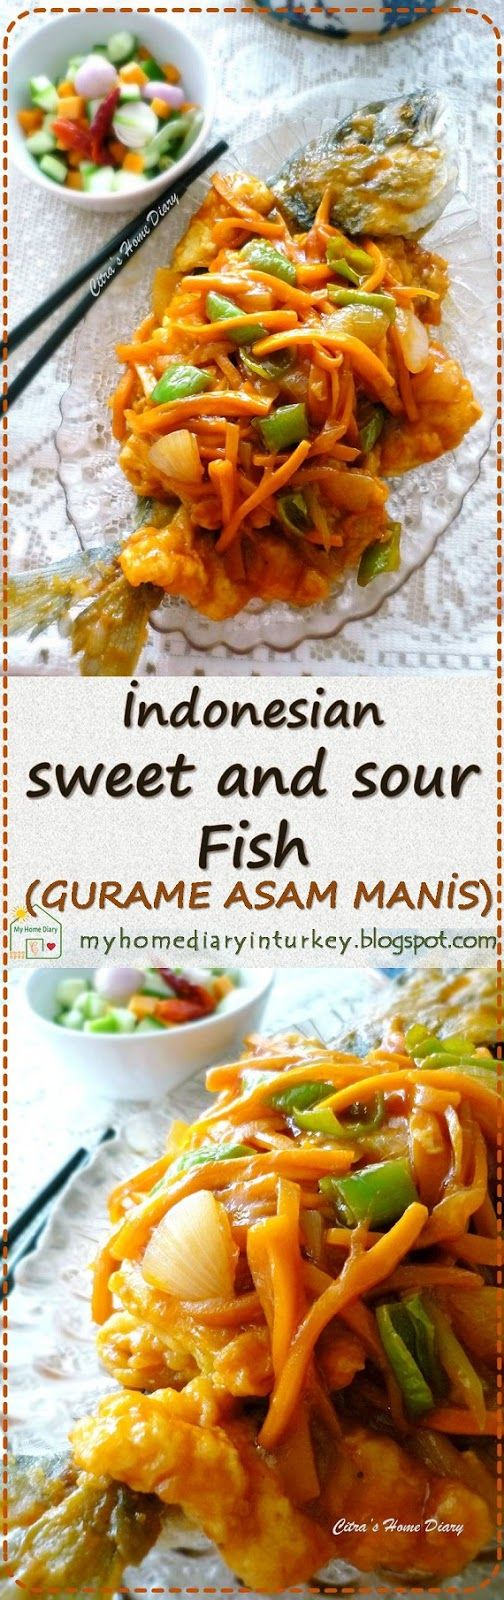 Gurame Asam manis /Carp or sea bream in Sweet and sour sauce . #Indonesianfood #Asian #sweetandsour #stirfried #seafood #fish #maindish #southeastasian